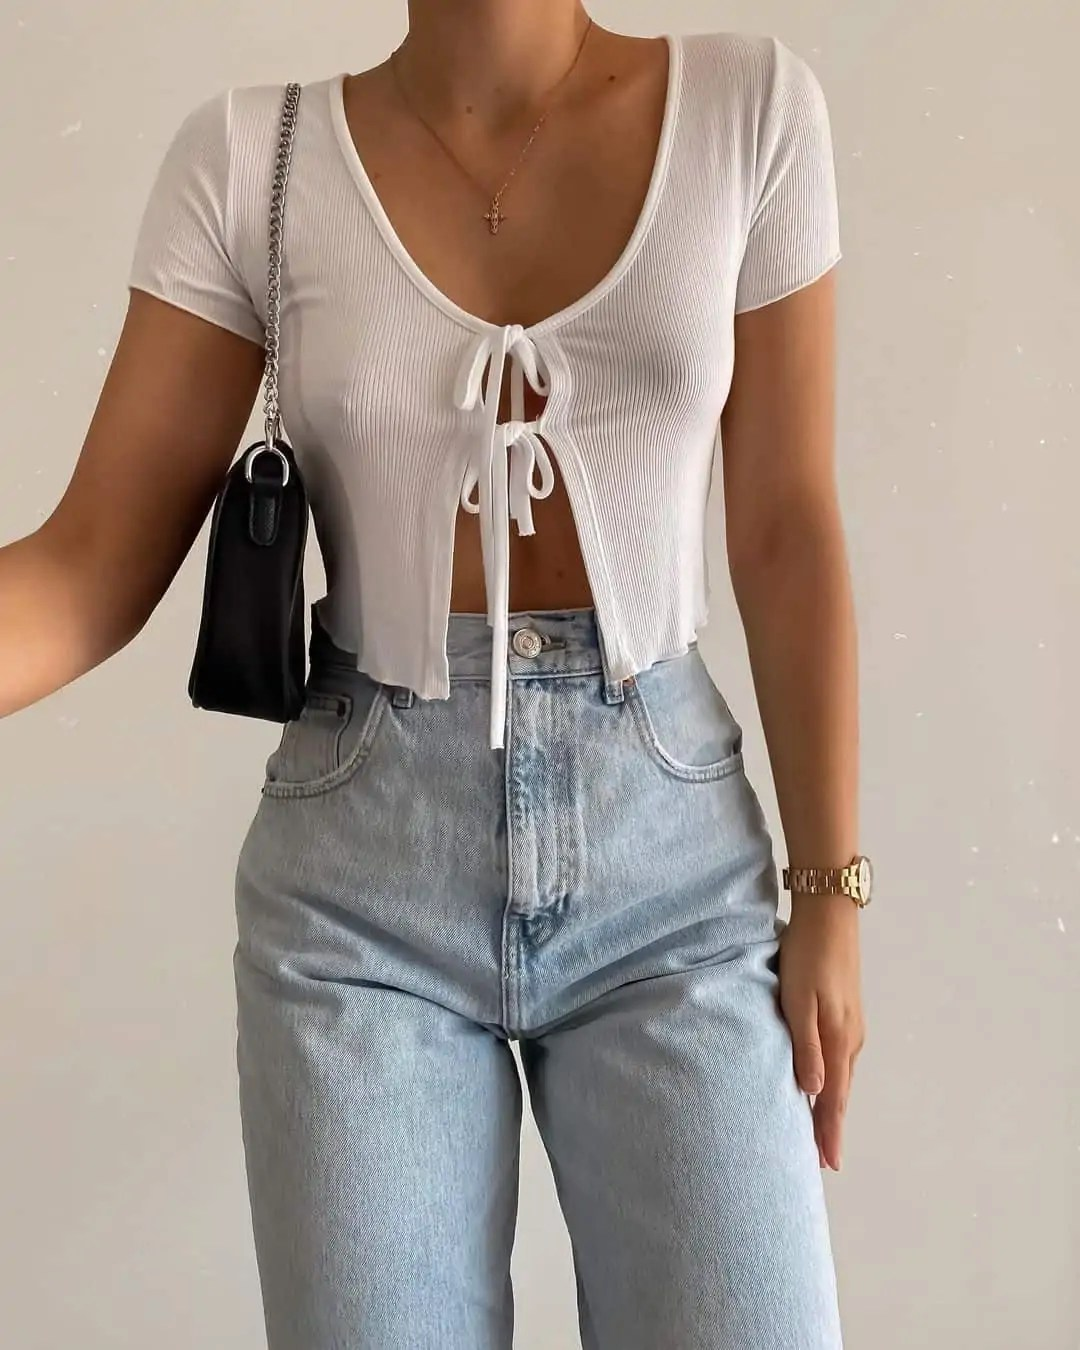 100+ Outfits to Inspire your next shopping haul 129